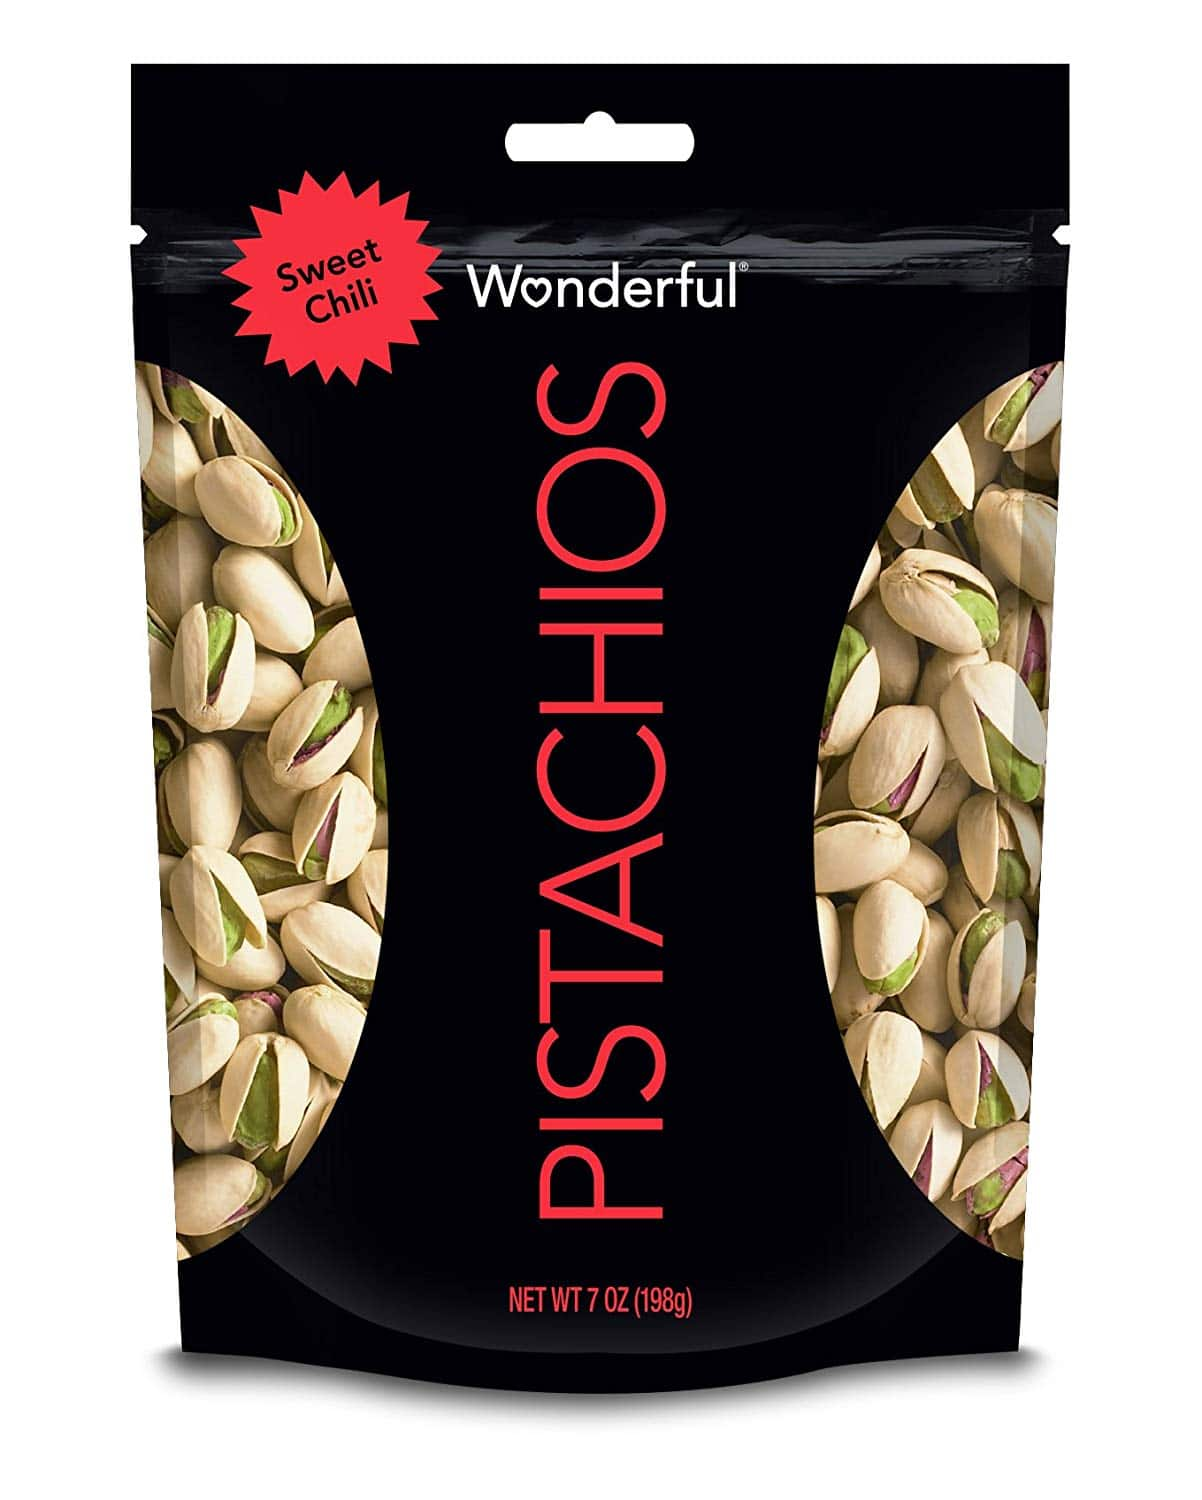 Amazon Wonderful Pistachios, Sweet Chili Flavored, 7 Ounce Resealable Pouch $3.31 - $3.48